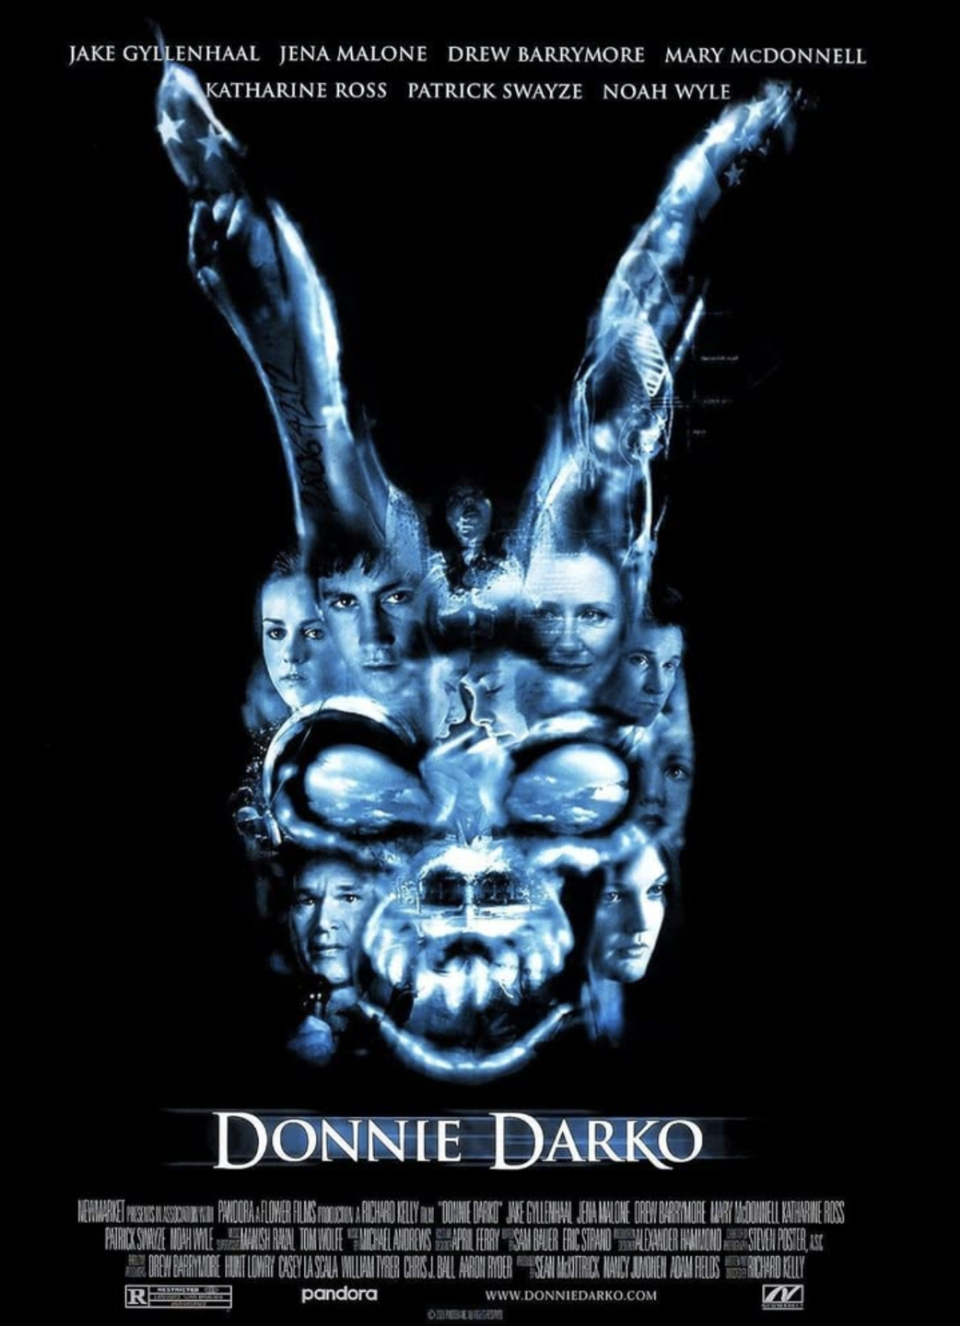 <p>This cult classic is just as good with every watch. Released on January 19, 2001, fresh face Jake Gyllenhaal plays Donnie Darko who sleepwalks and sees an ominous rabbit named Frank. He tells Donnie that the world will end in 28 days. Is it an alternate universe or a perspective of mental illness? Whatever it is, it's cinema that was ahead of its time. </p>